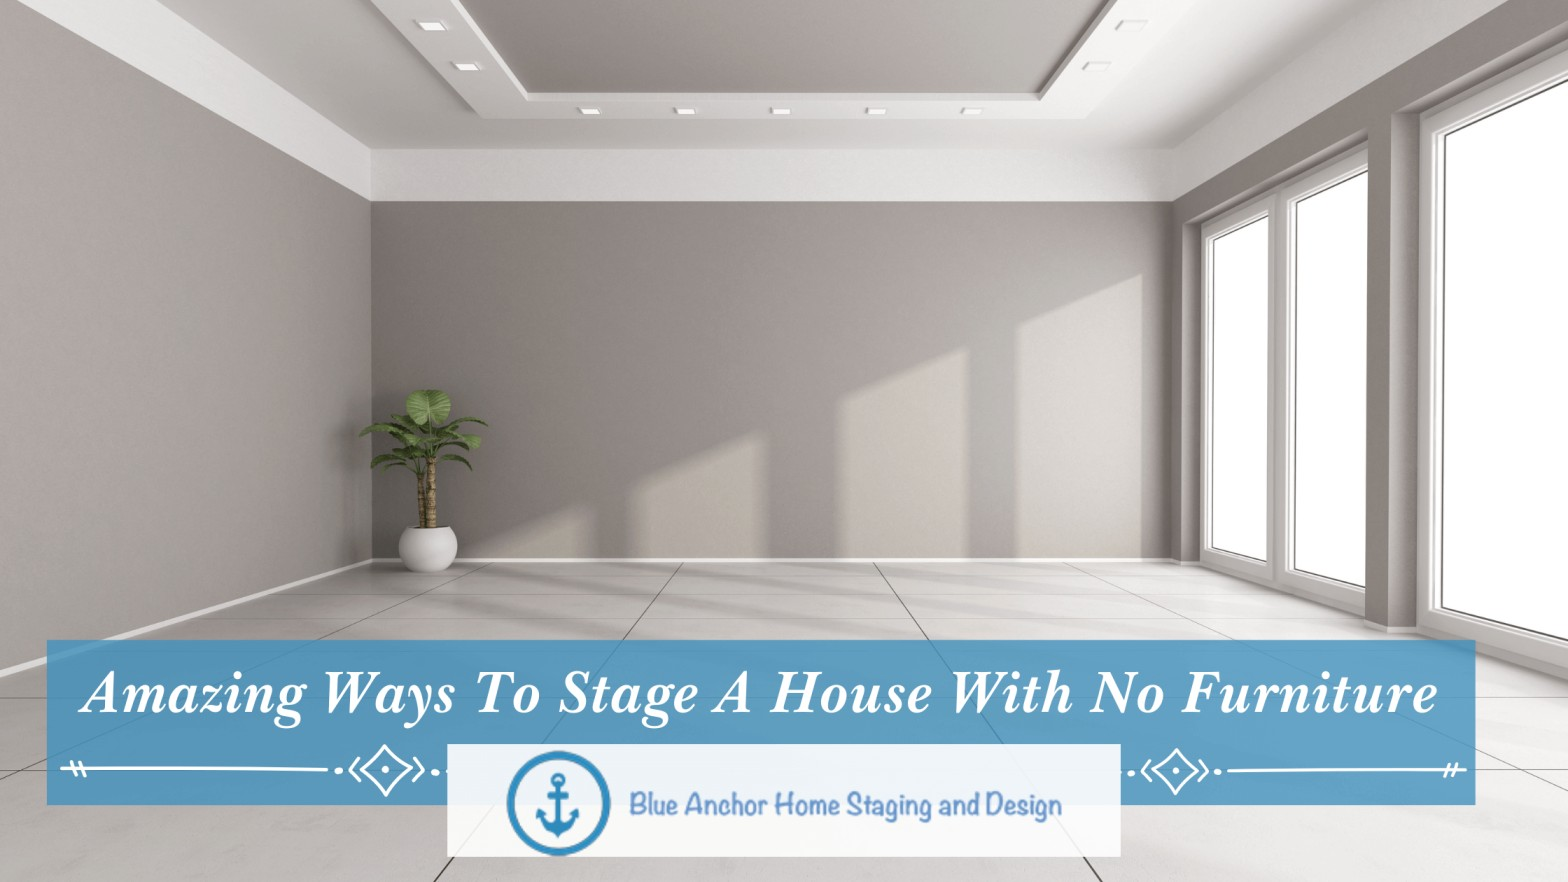 Amazing Ways To Stage A House With No Furniture